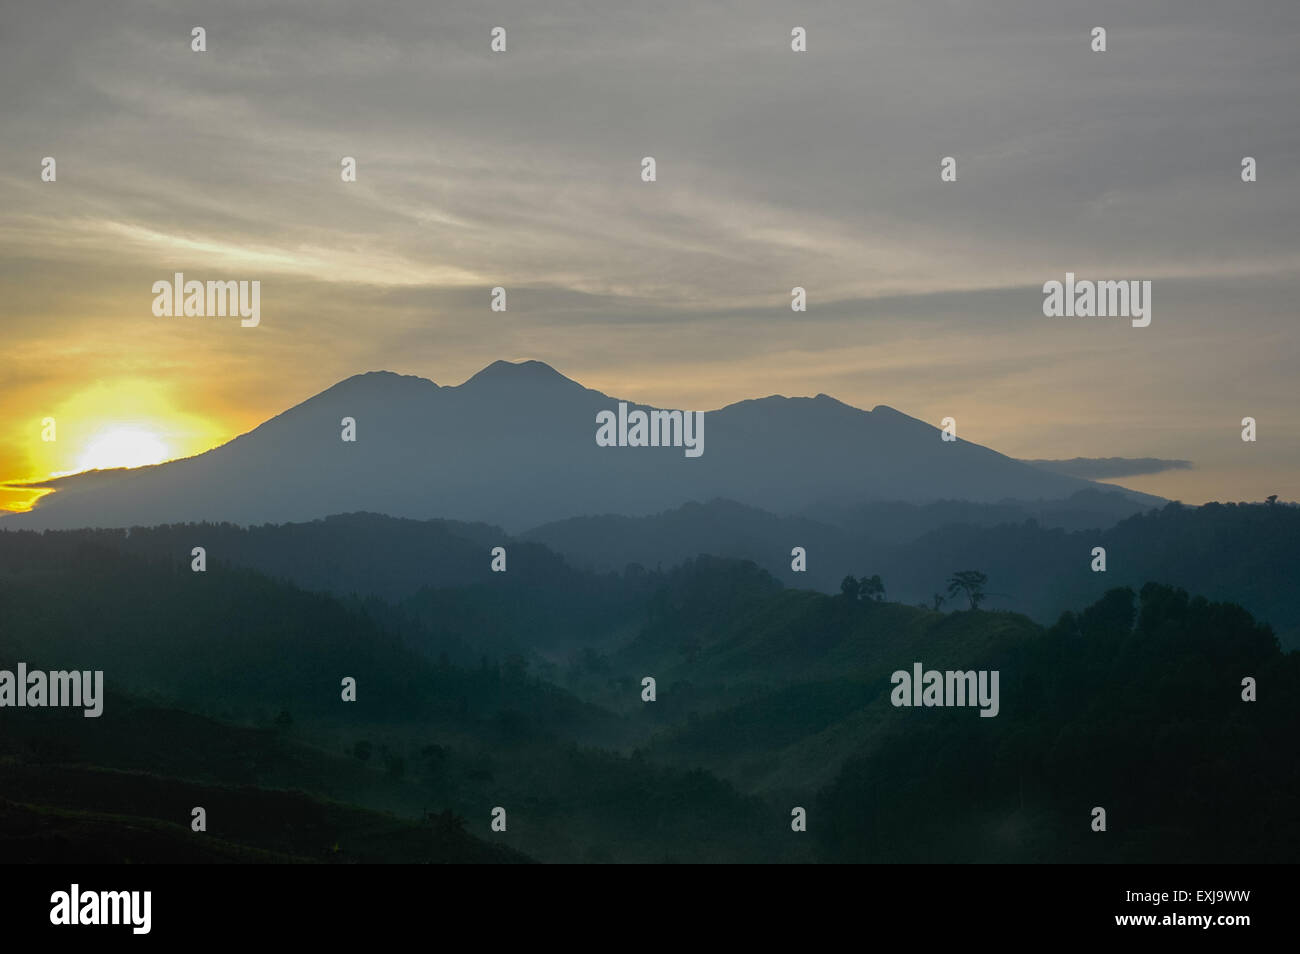 Geographical feature of Mount Pangrango (left) and Mount Gede (right) seen from Sukabumi Regency, West Java, Indonesia. - Stock Image